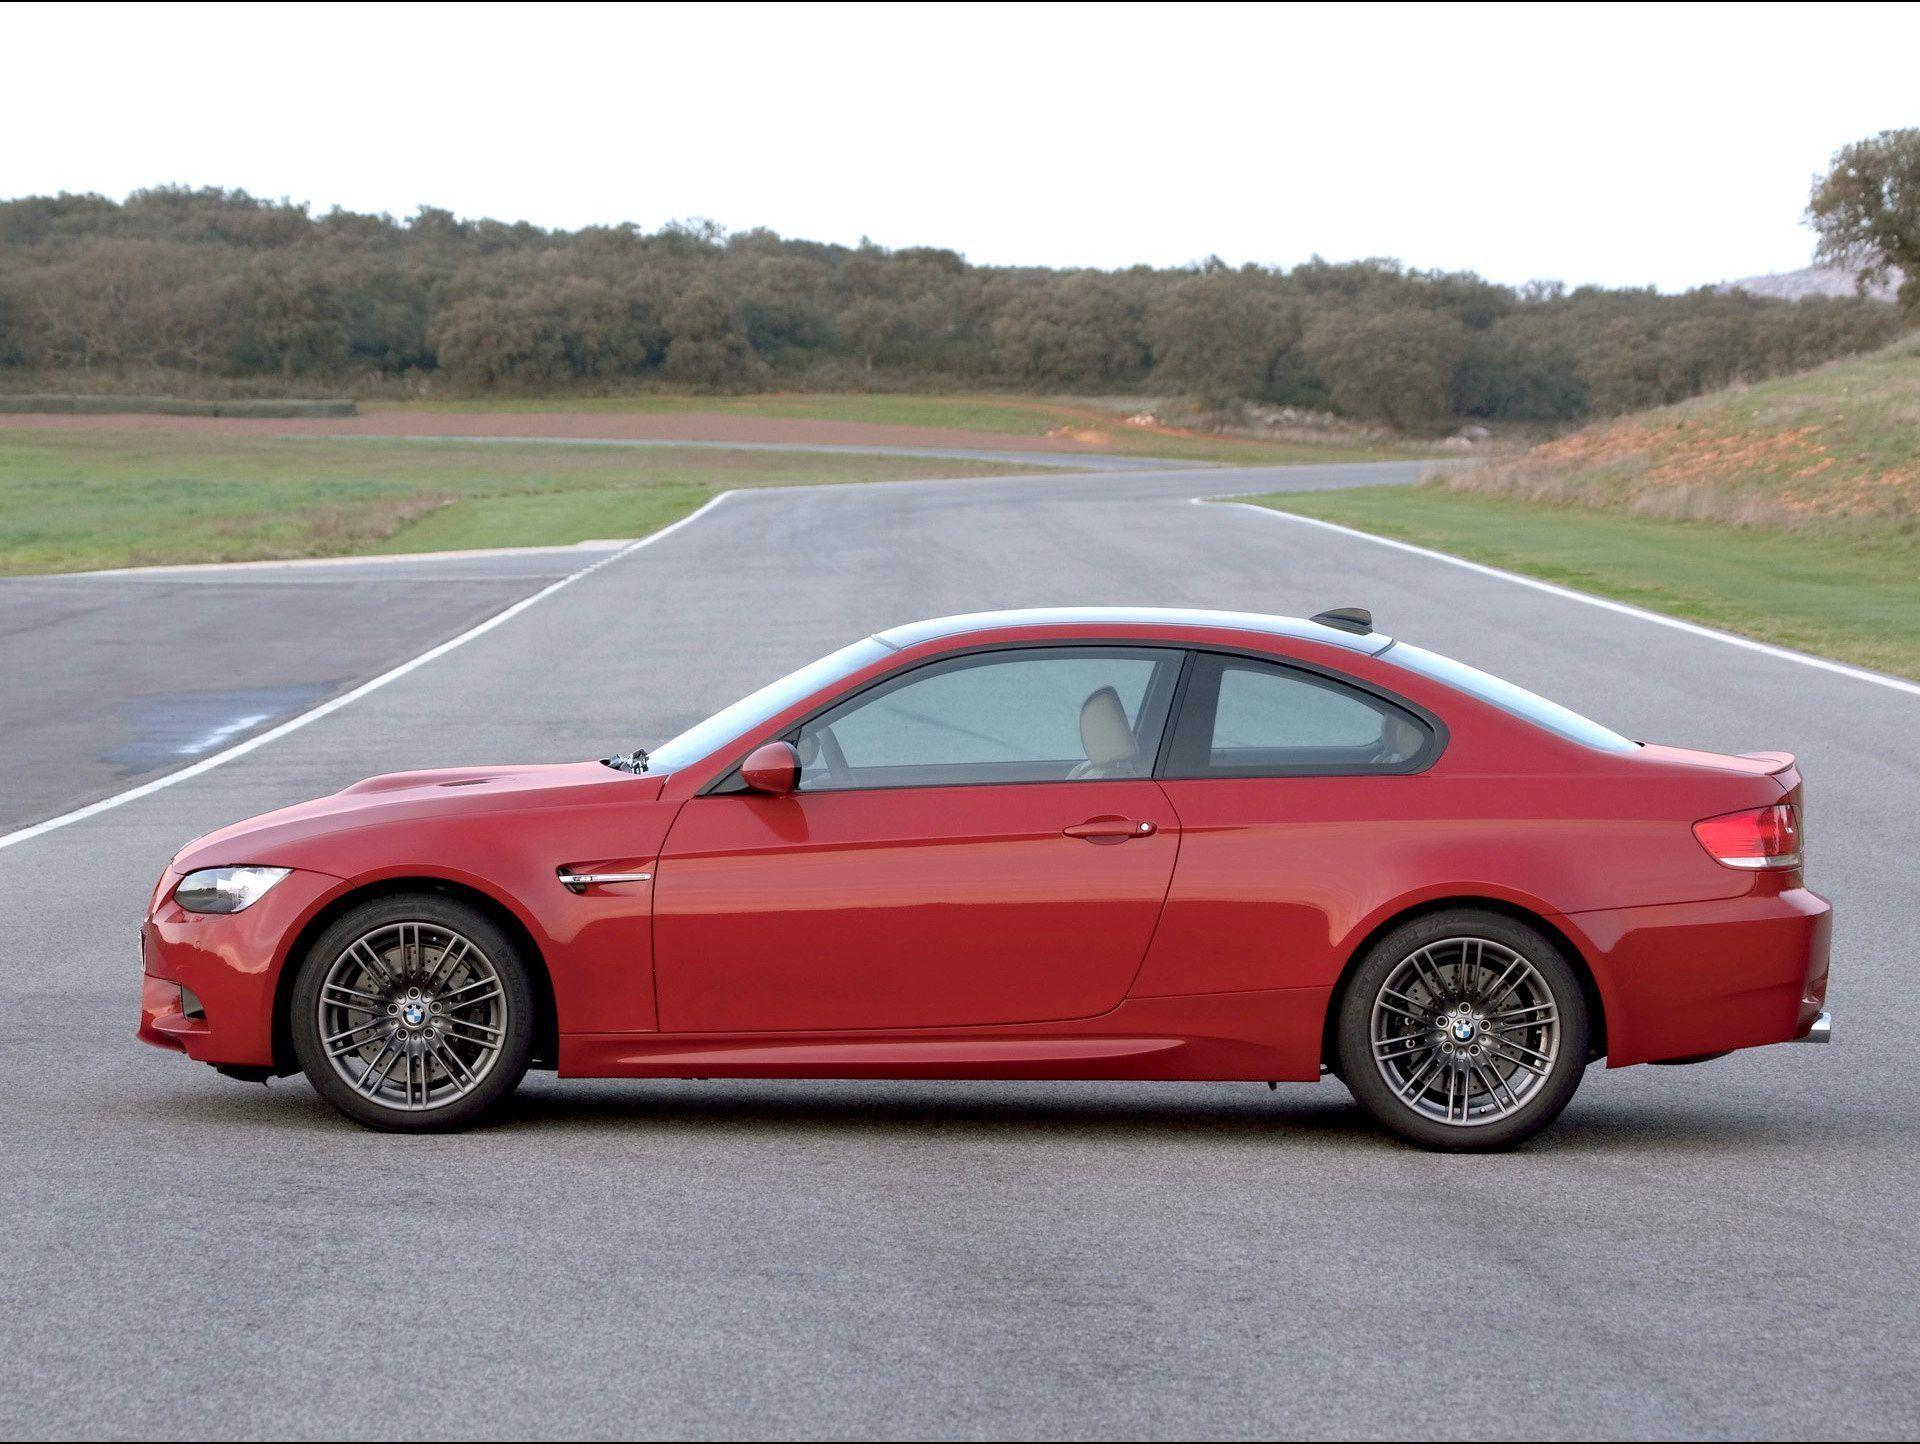 2008 BMW M3 Wallpaper 15 - 1920x1440